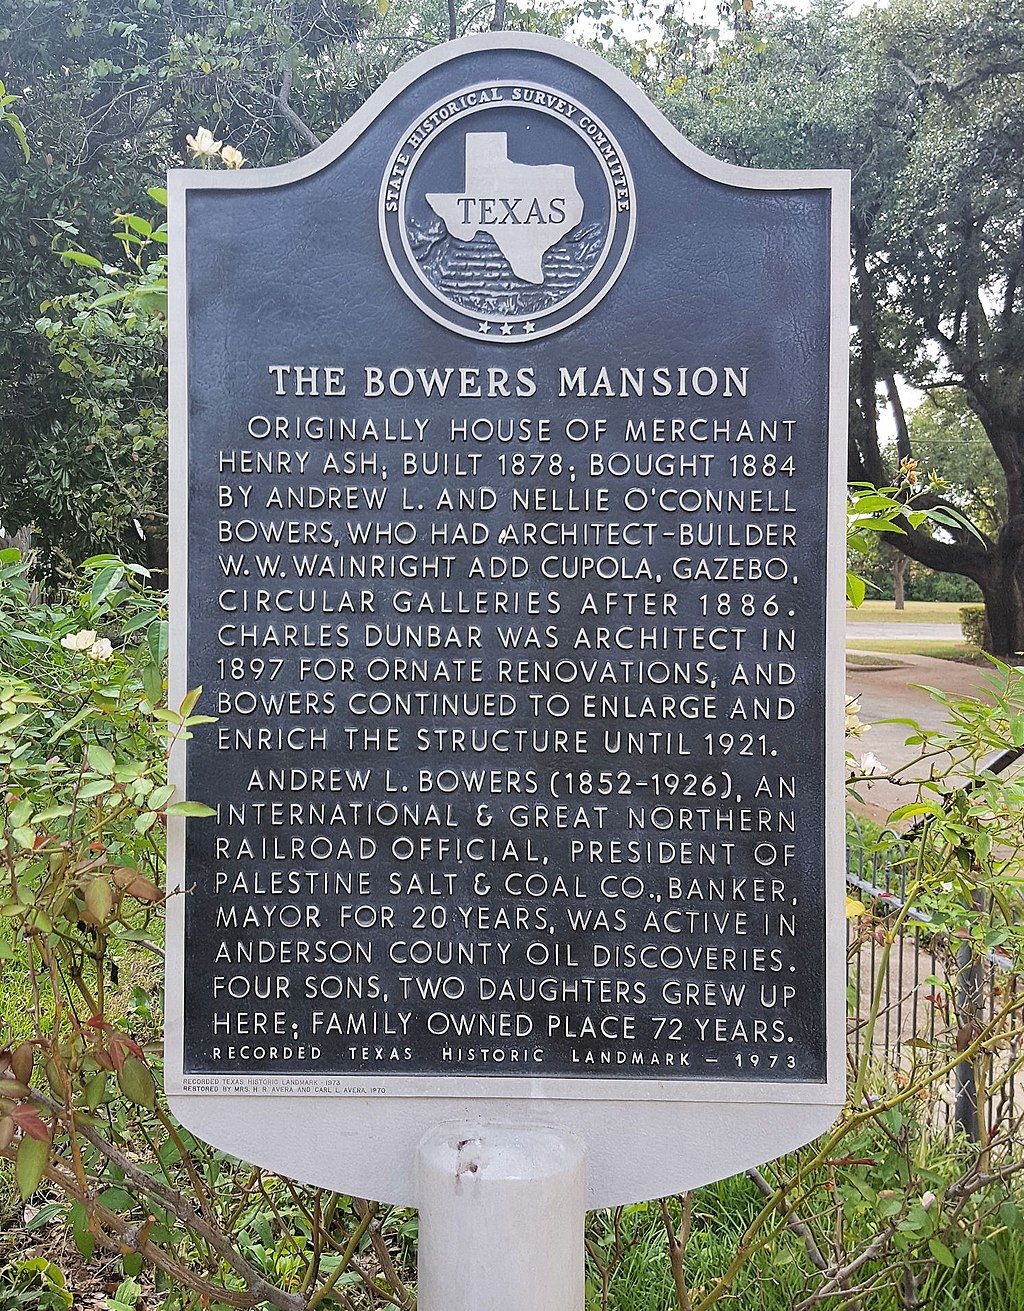 View of the Historic Bowers Mansion